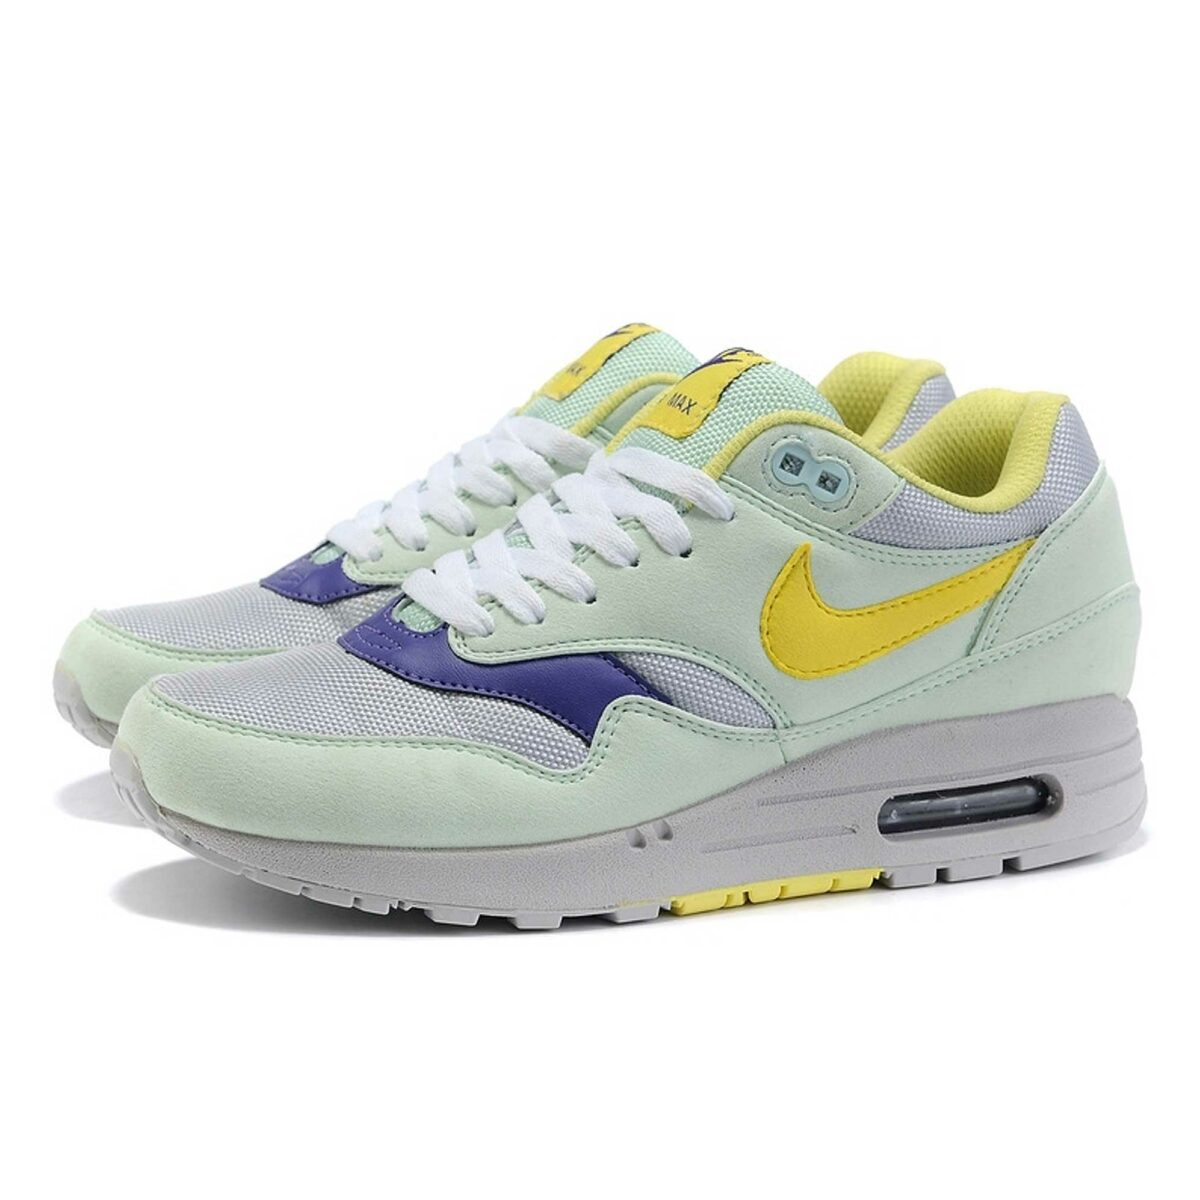 Интернет магазин Nike Air Max 1 87 Green Lemon